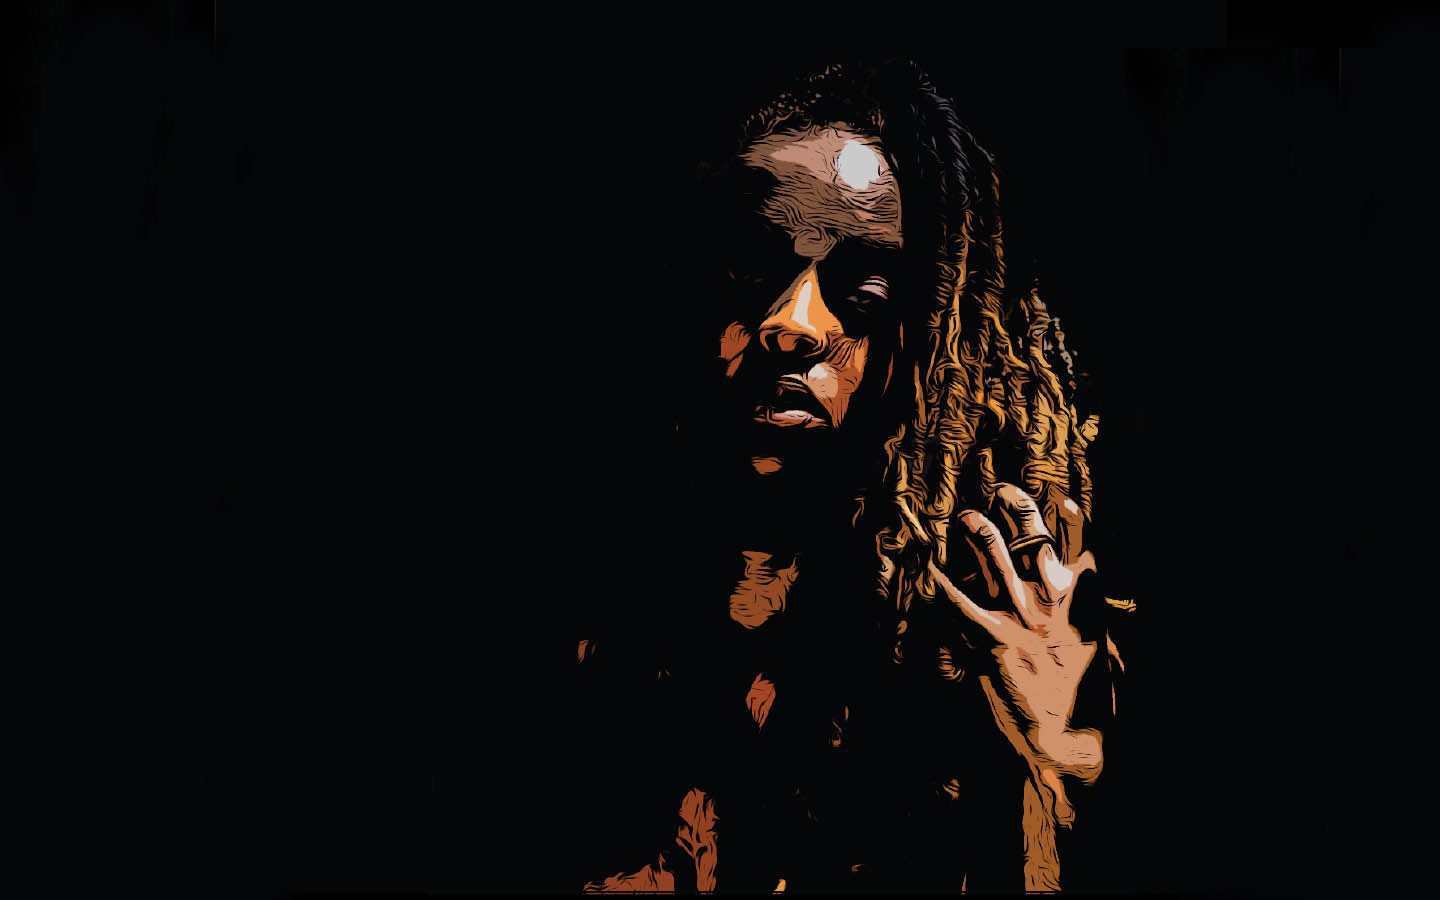 Joannah with Dreadlocks in Graphic design and Digital Art you can request for your version